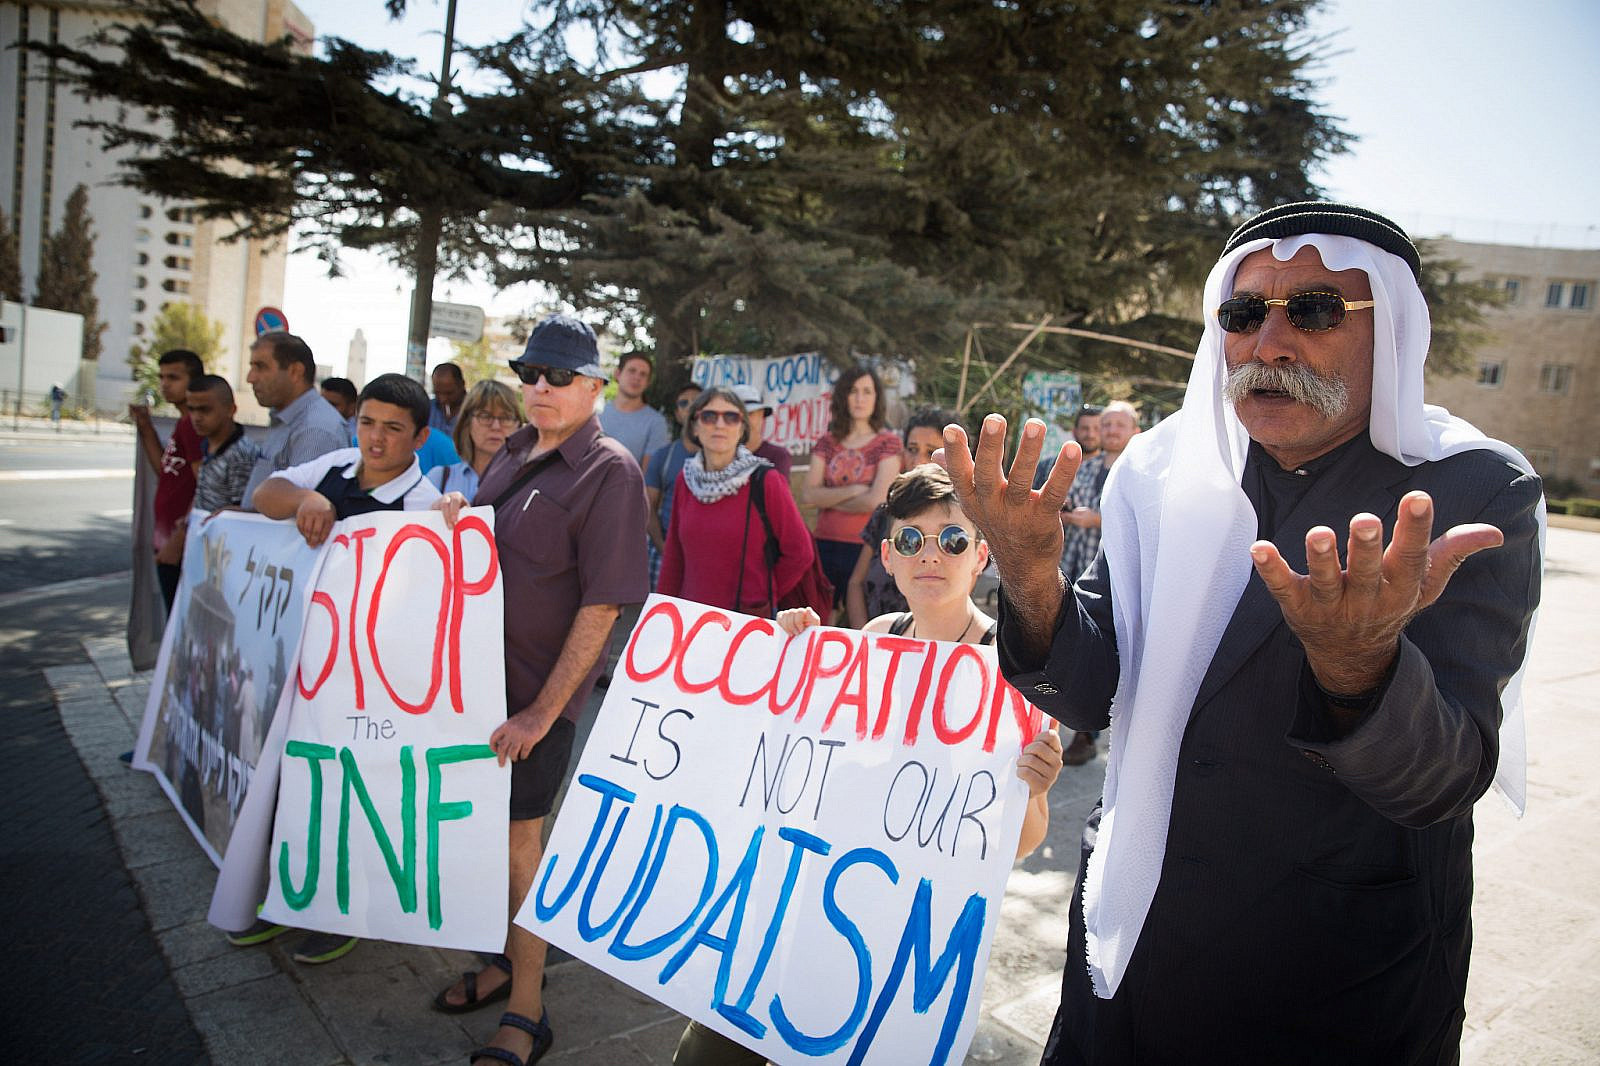 Residents of the Bedouin village of Al-Araqib and Jewish activists protesting against demolitions in front of the JNF office in Jerusalem on October 16, 2016. (Flash90)